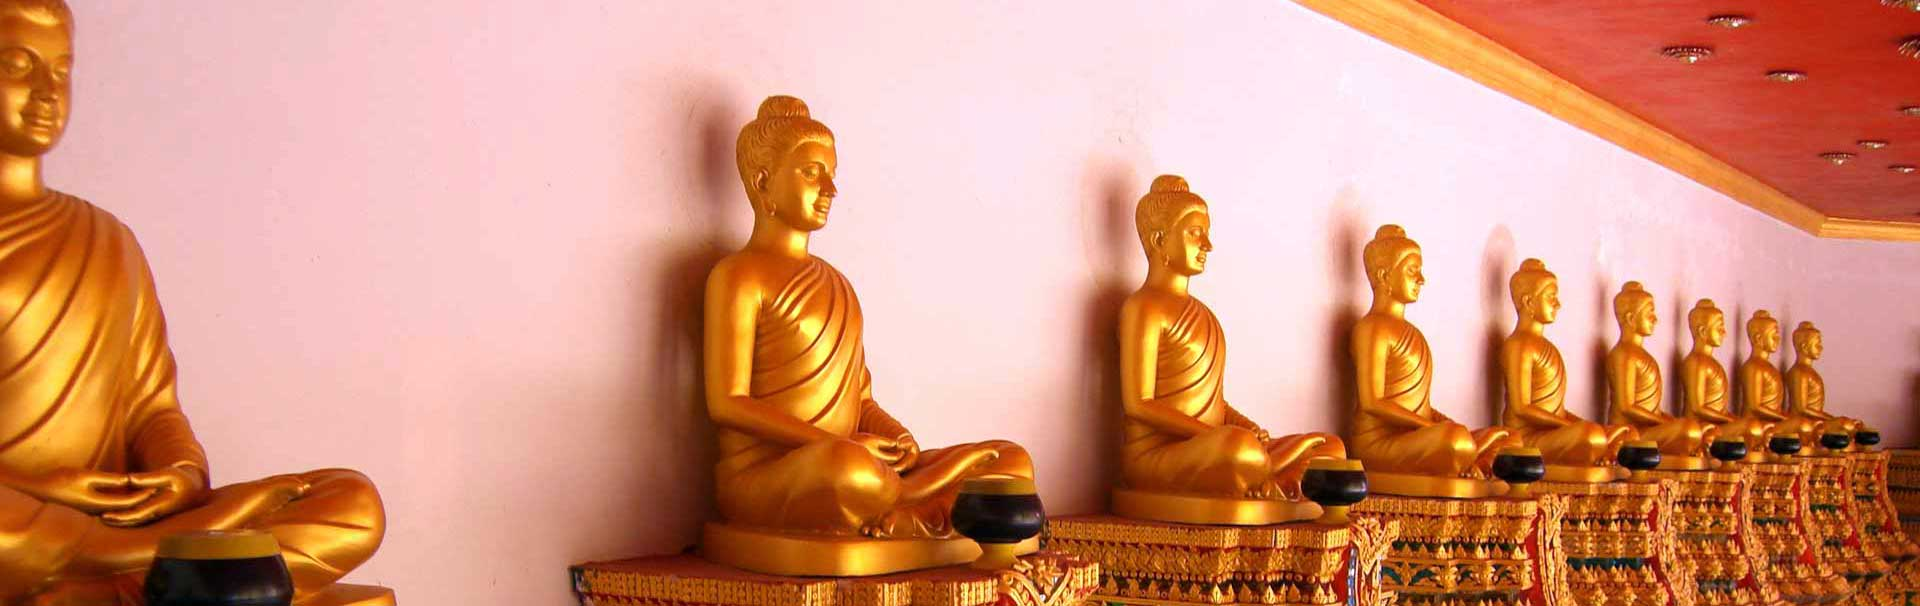 Buddha Statues in a row